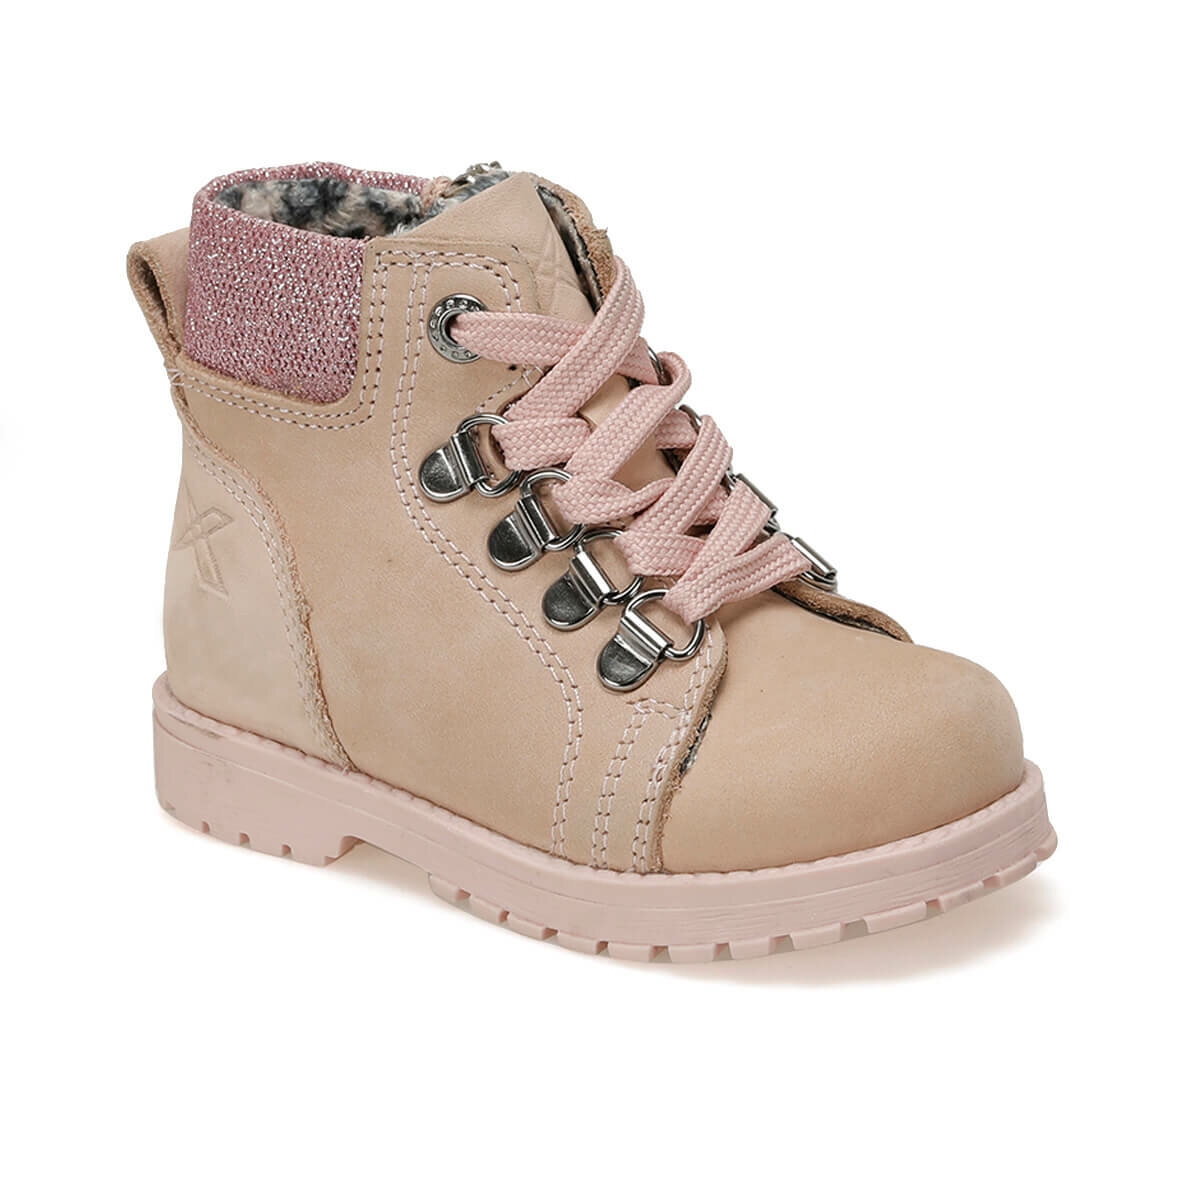 FLO SARDONE LEATHER 9PR Pink Female Child Boots KINETIX